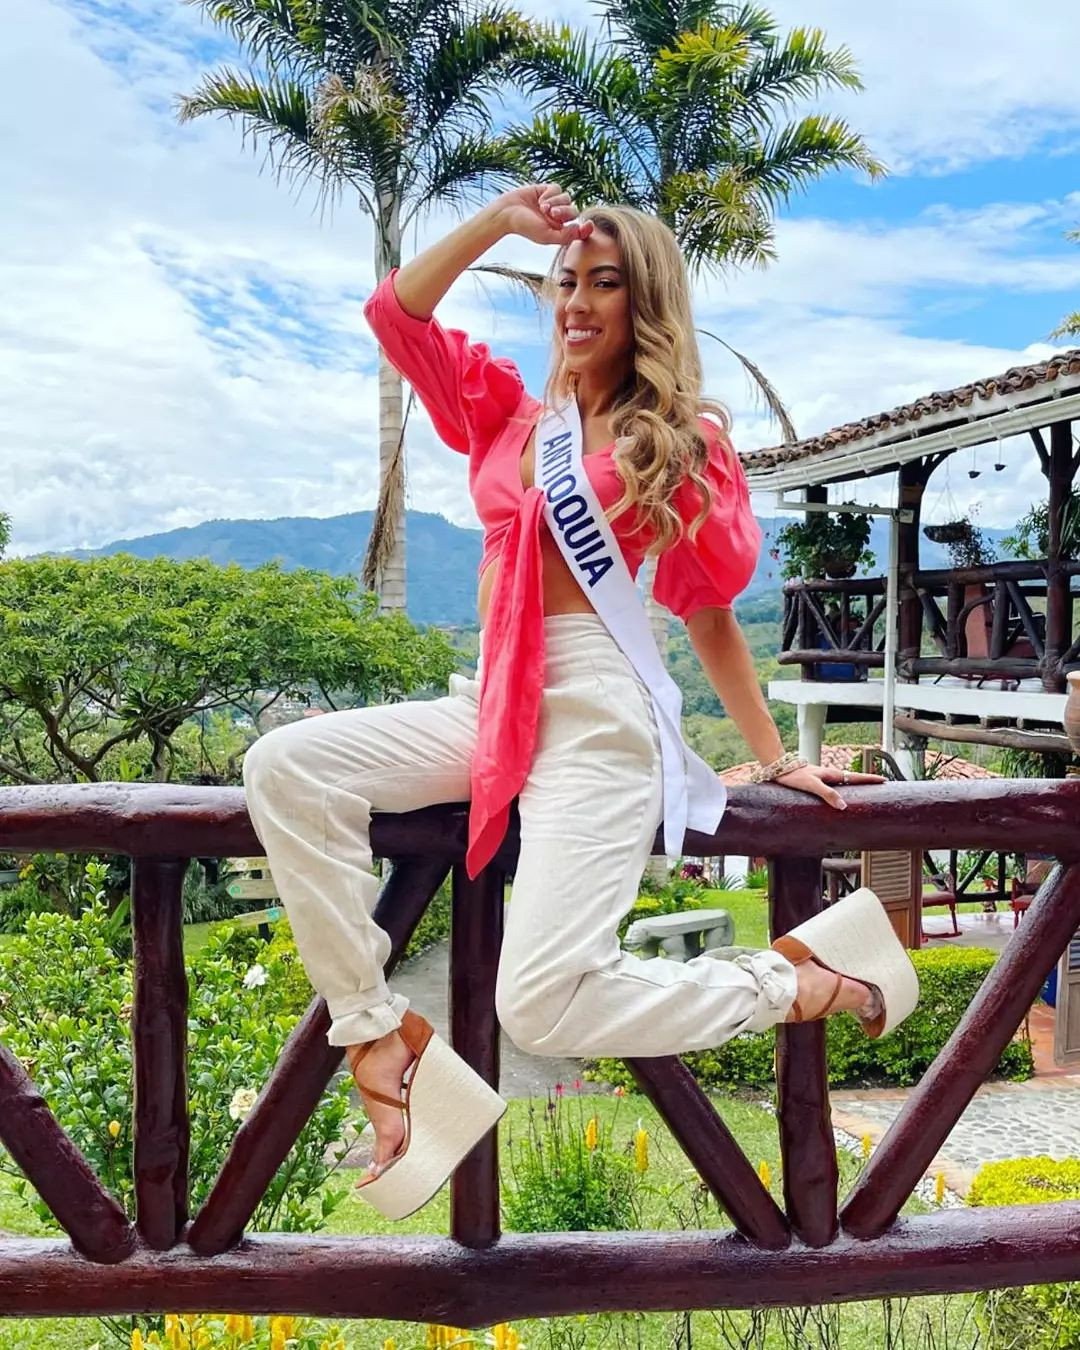 candidatas a miss universe colombia 2021. final: 18 oct. sede: neiva. - Página 24 5fMnf4